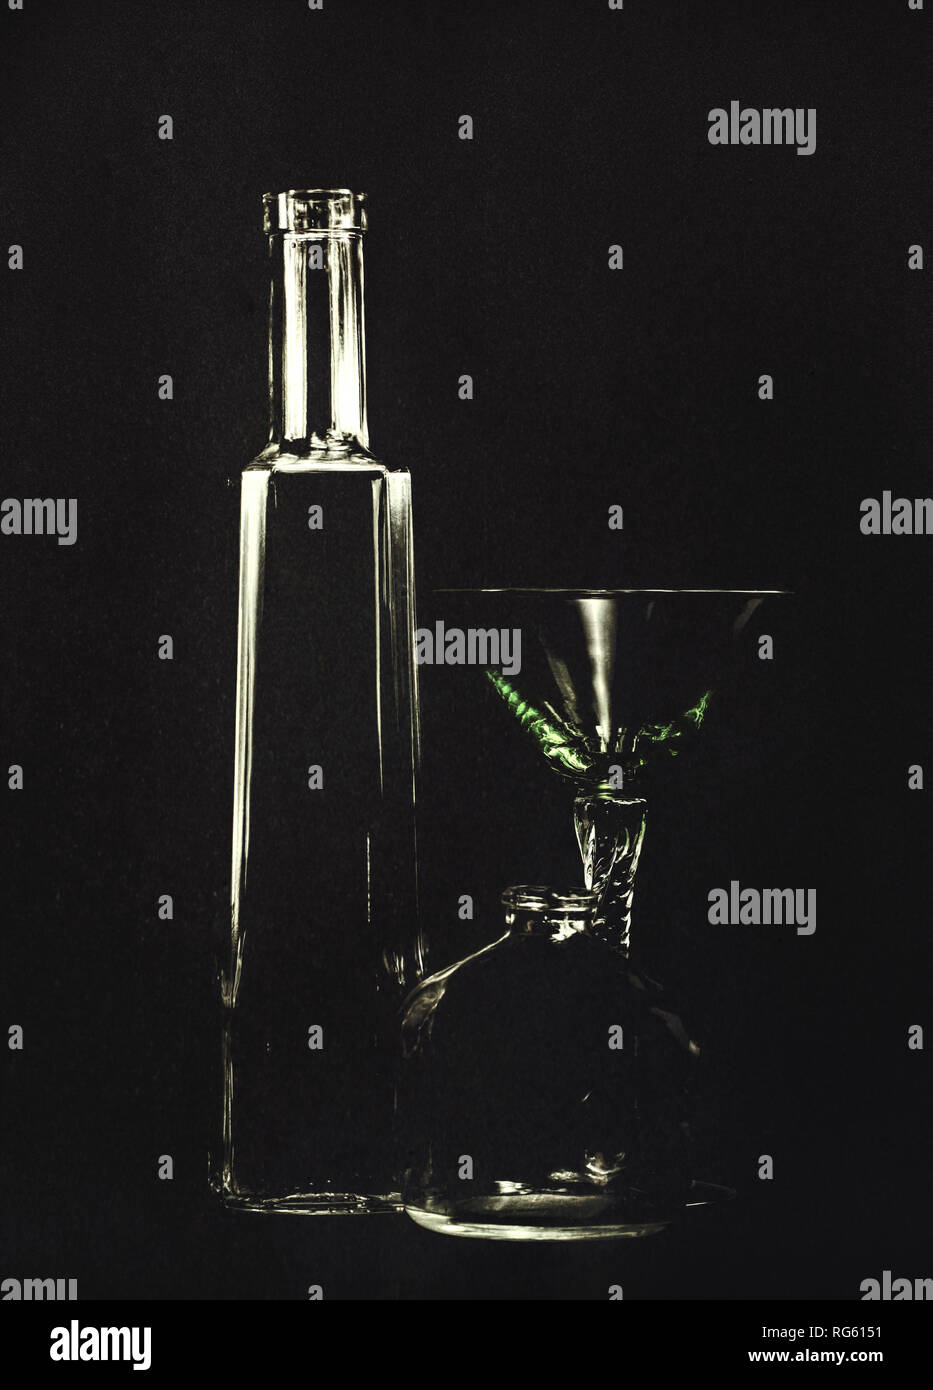 Empty bottles and a cocktail glass, poison, murder concept. Backlit so black background, artistic texture applied. - Stock Image